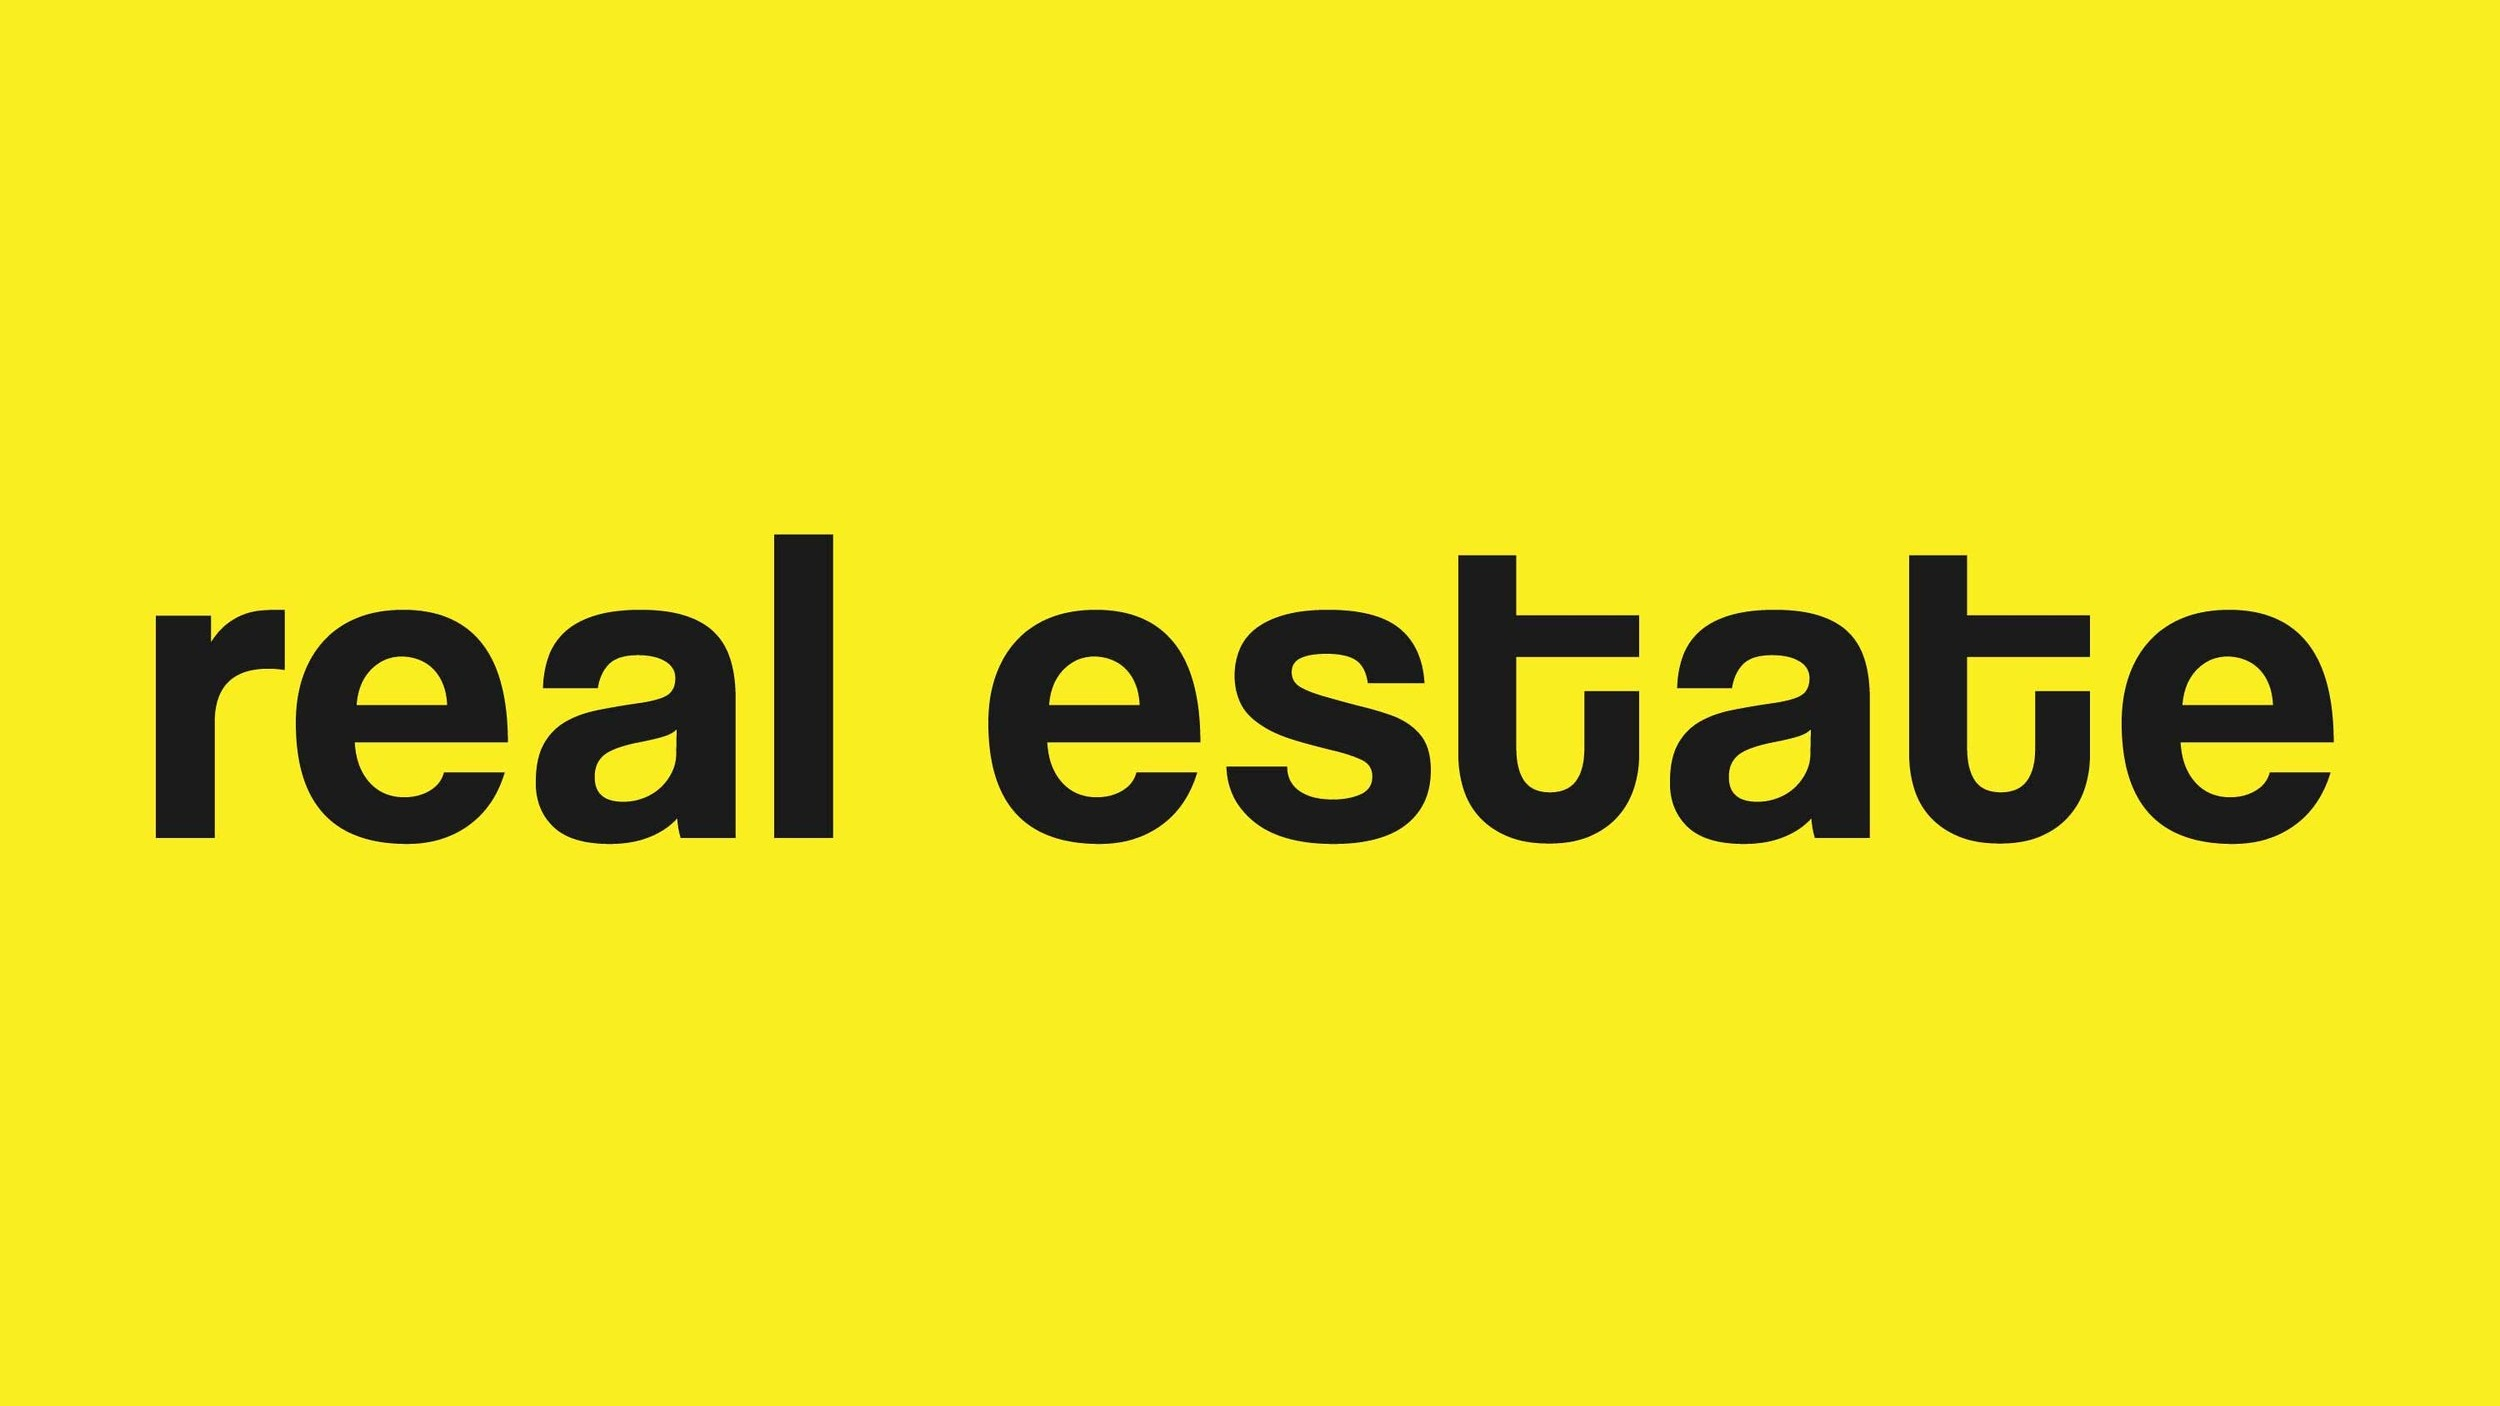 real+estate-01.jpg